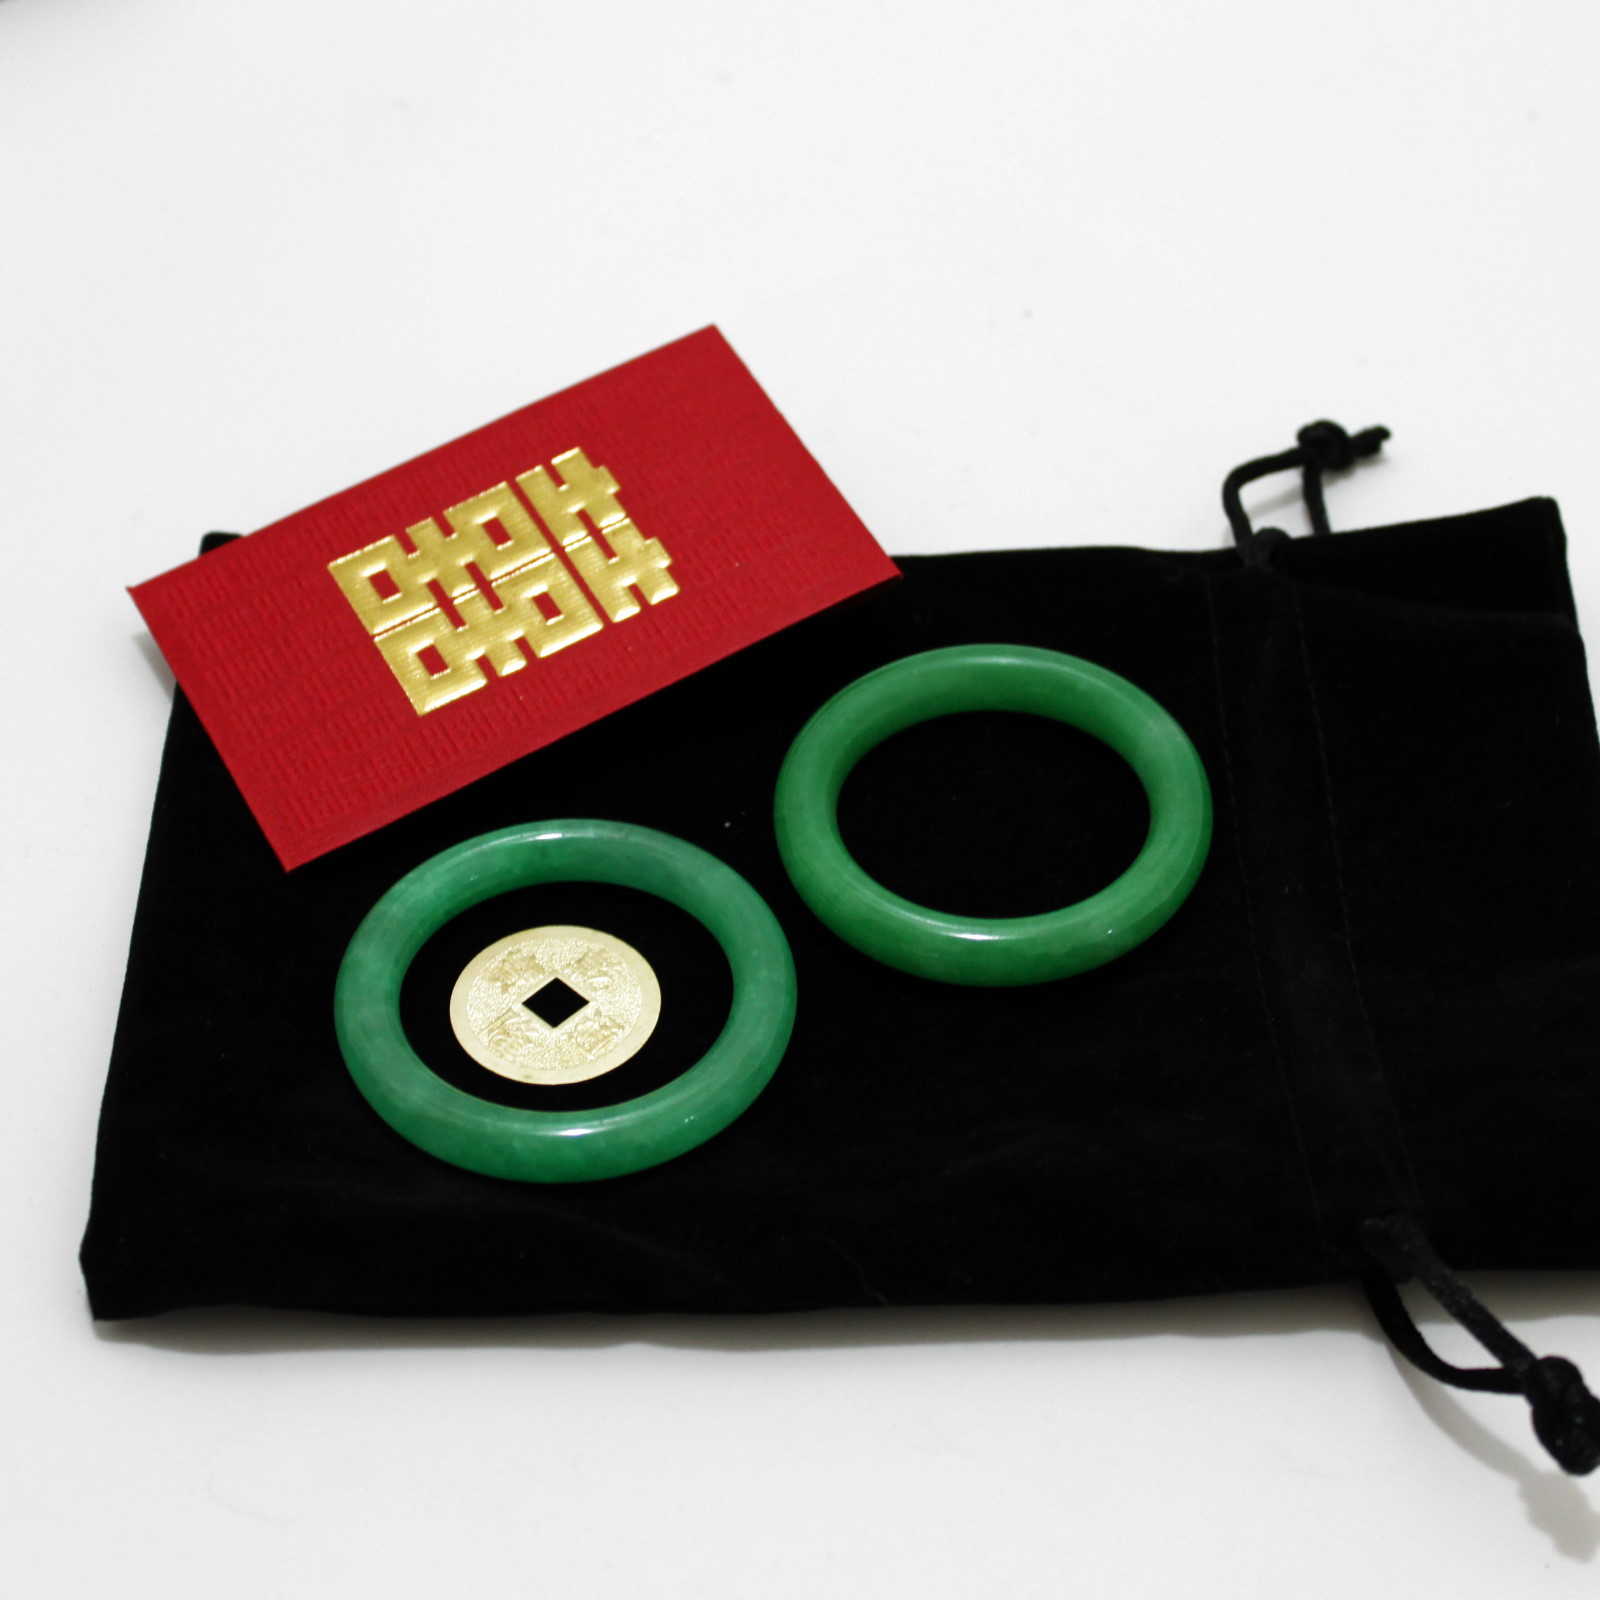 Baby Jade Rings and Coin Set by Alan Wong